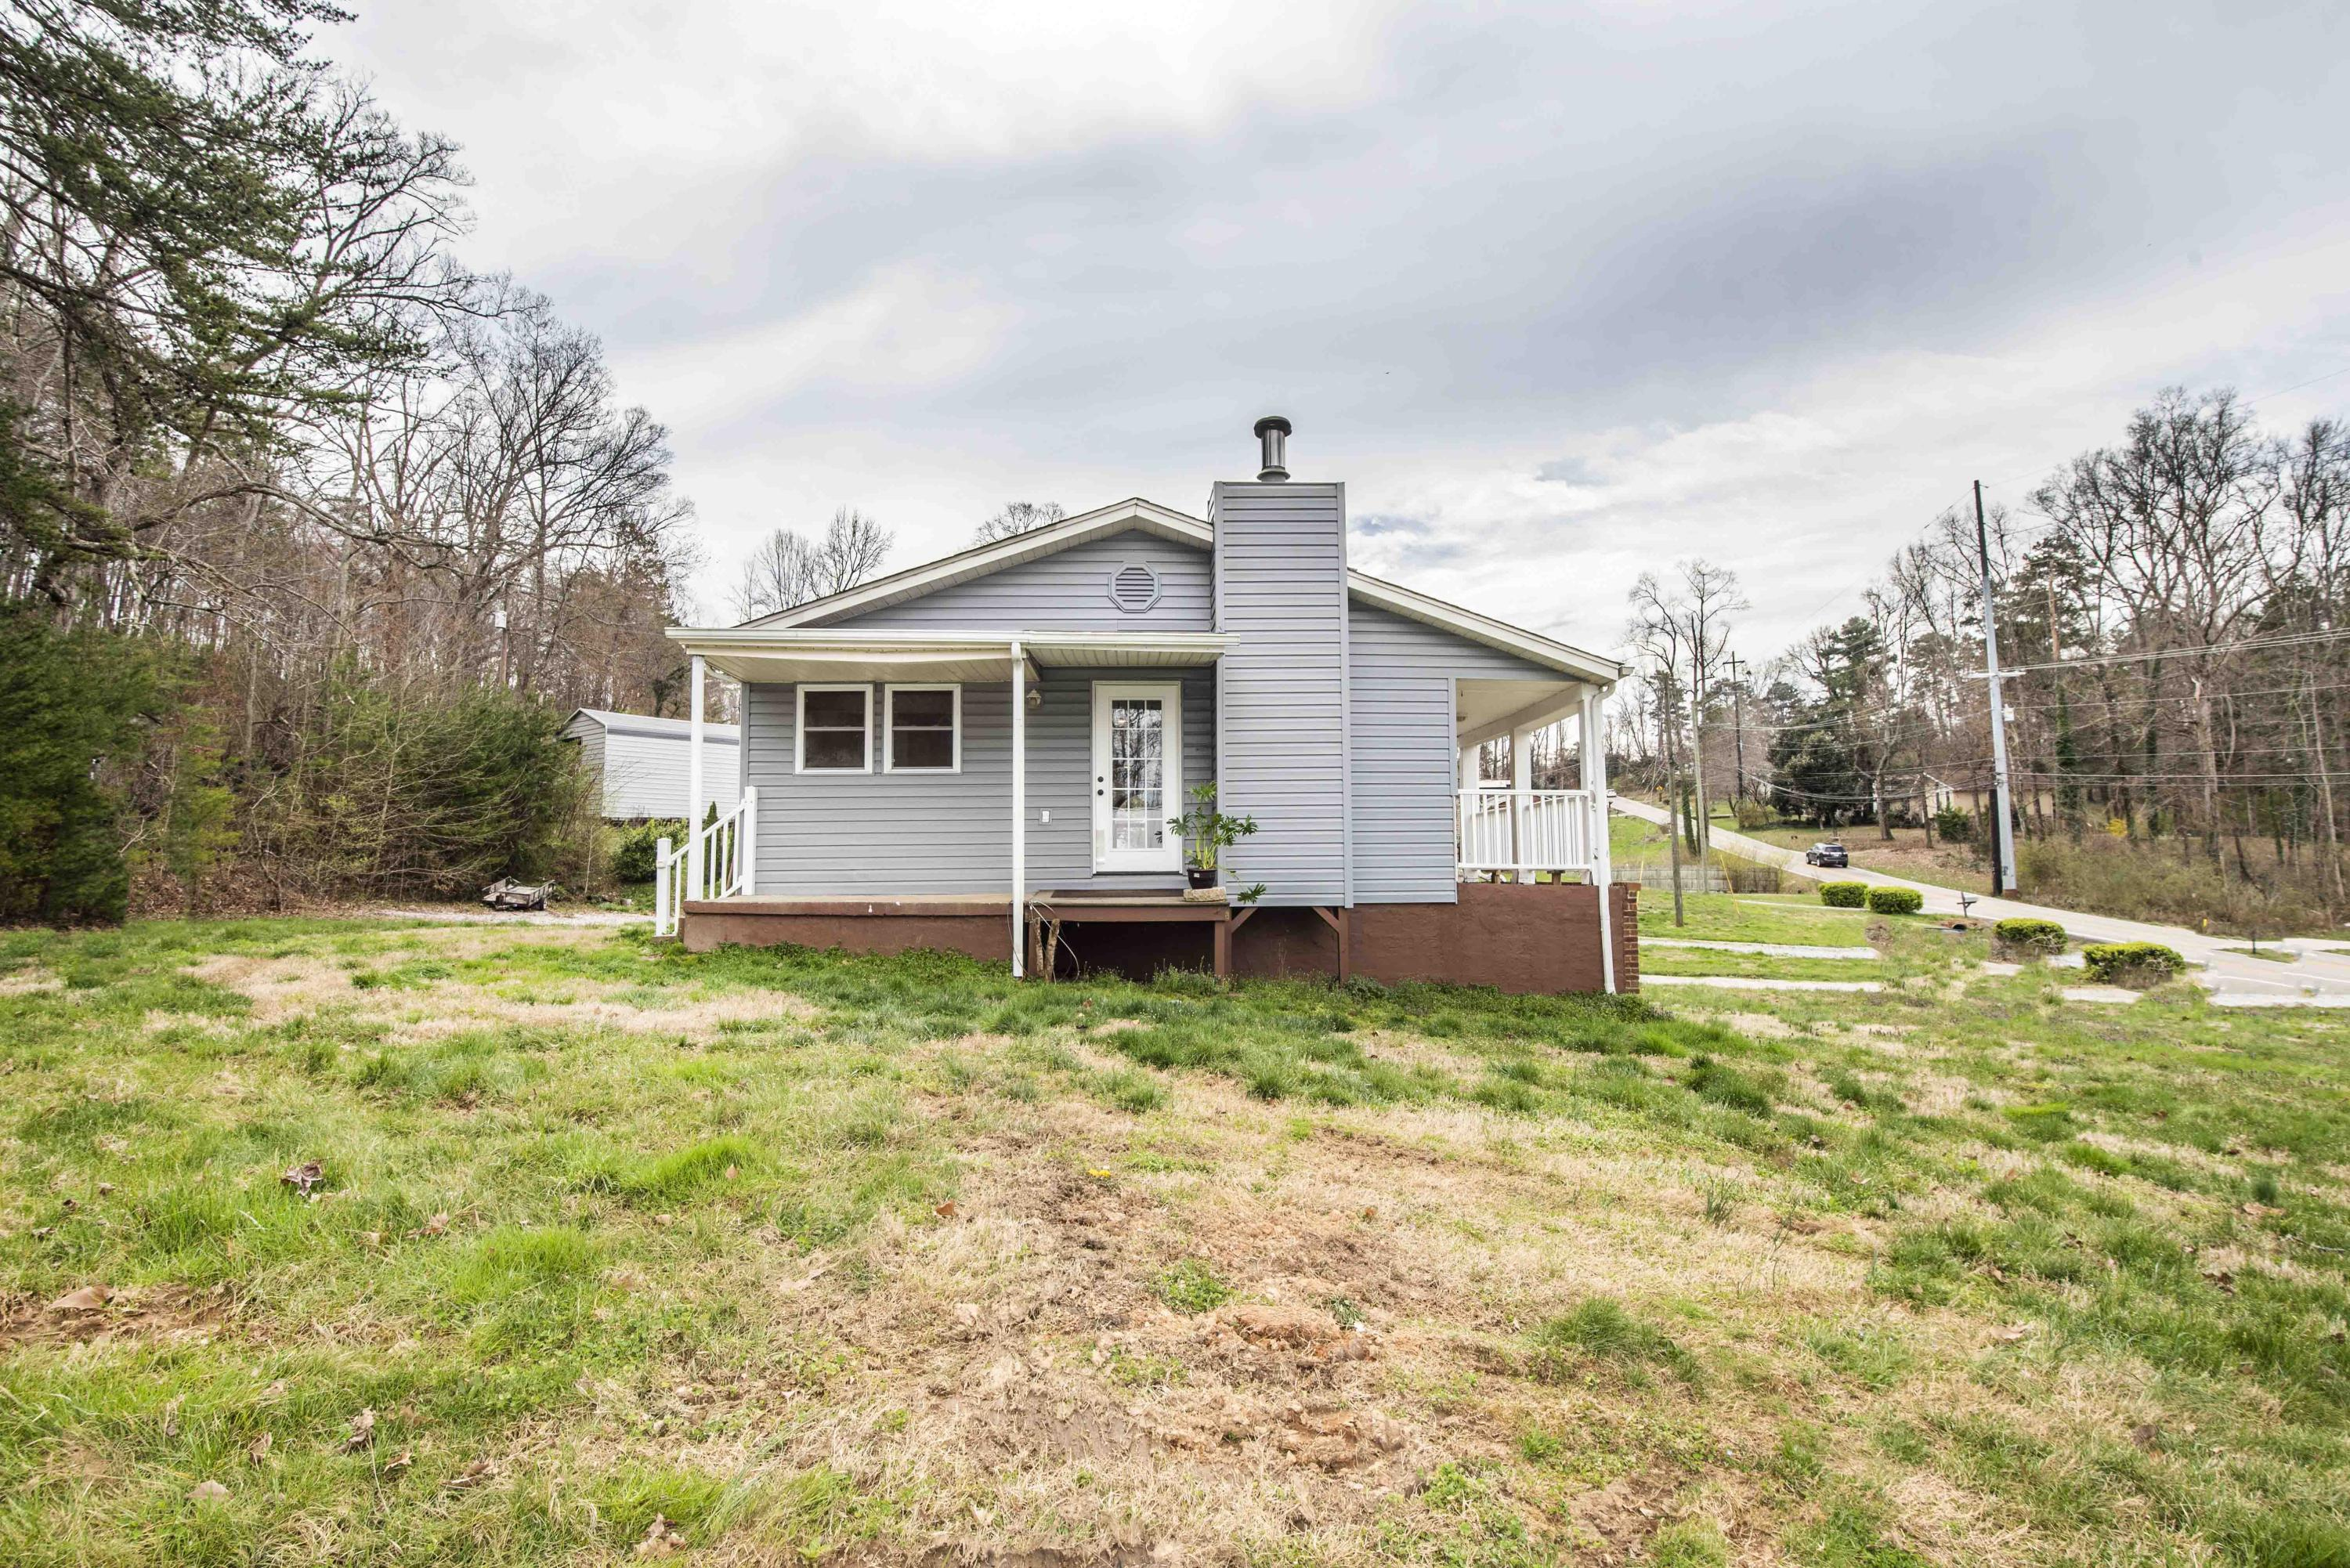 3032 Bakertown Rd, Knoxville, Tennessee 37931, 2 Bedrooms Bedrooms, ,2 BathroomsBathrooms,Single Family,For Sale,Bakertown,1073079